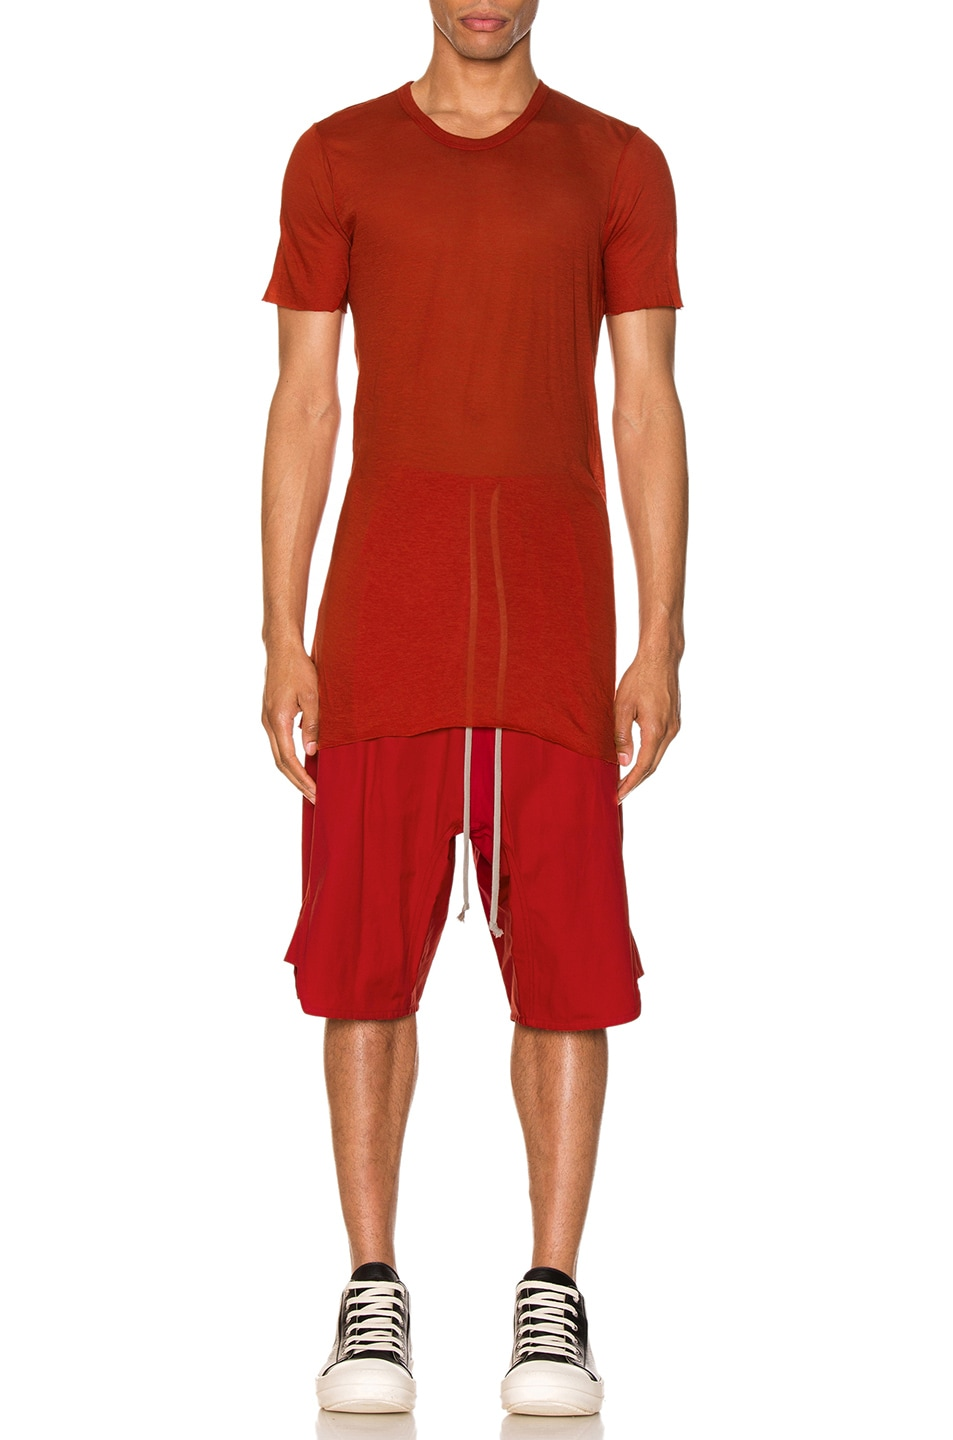 Image 4 of Rick Owens Basic Tee in Cardinal Red